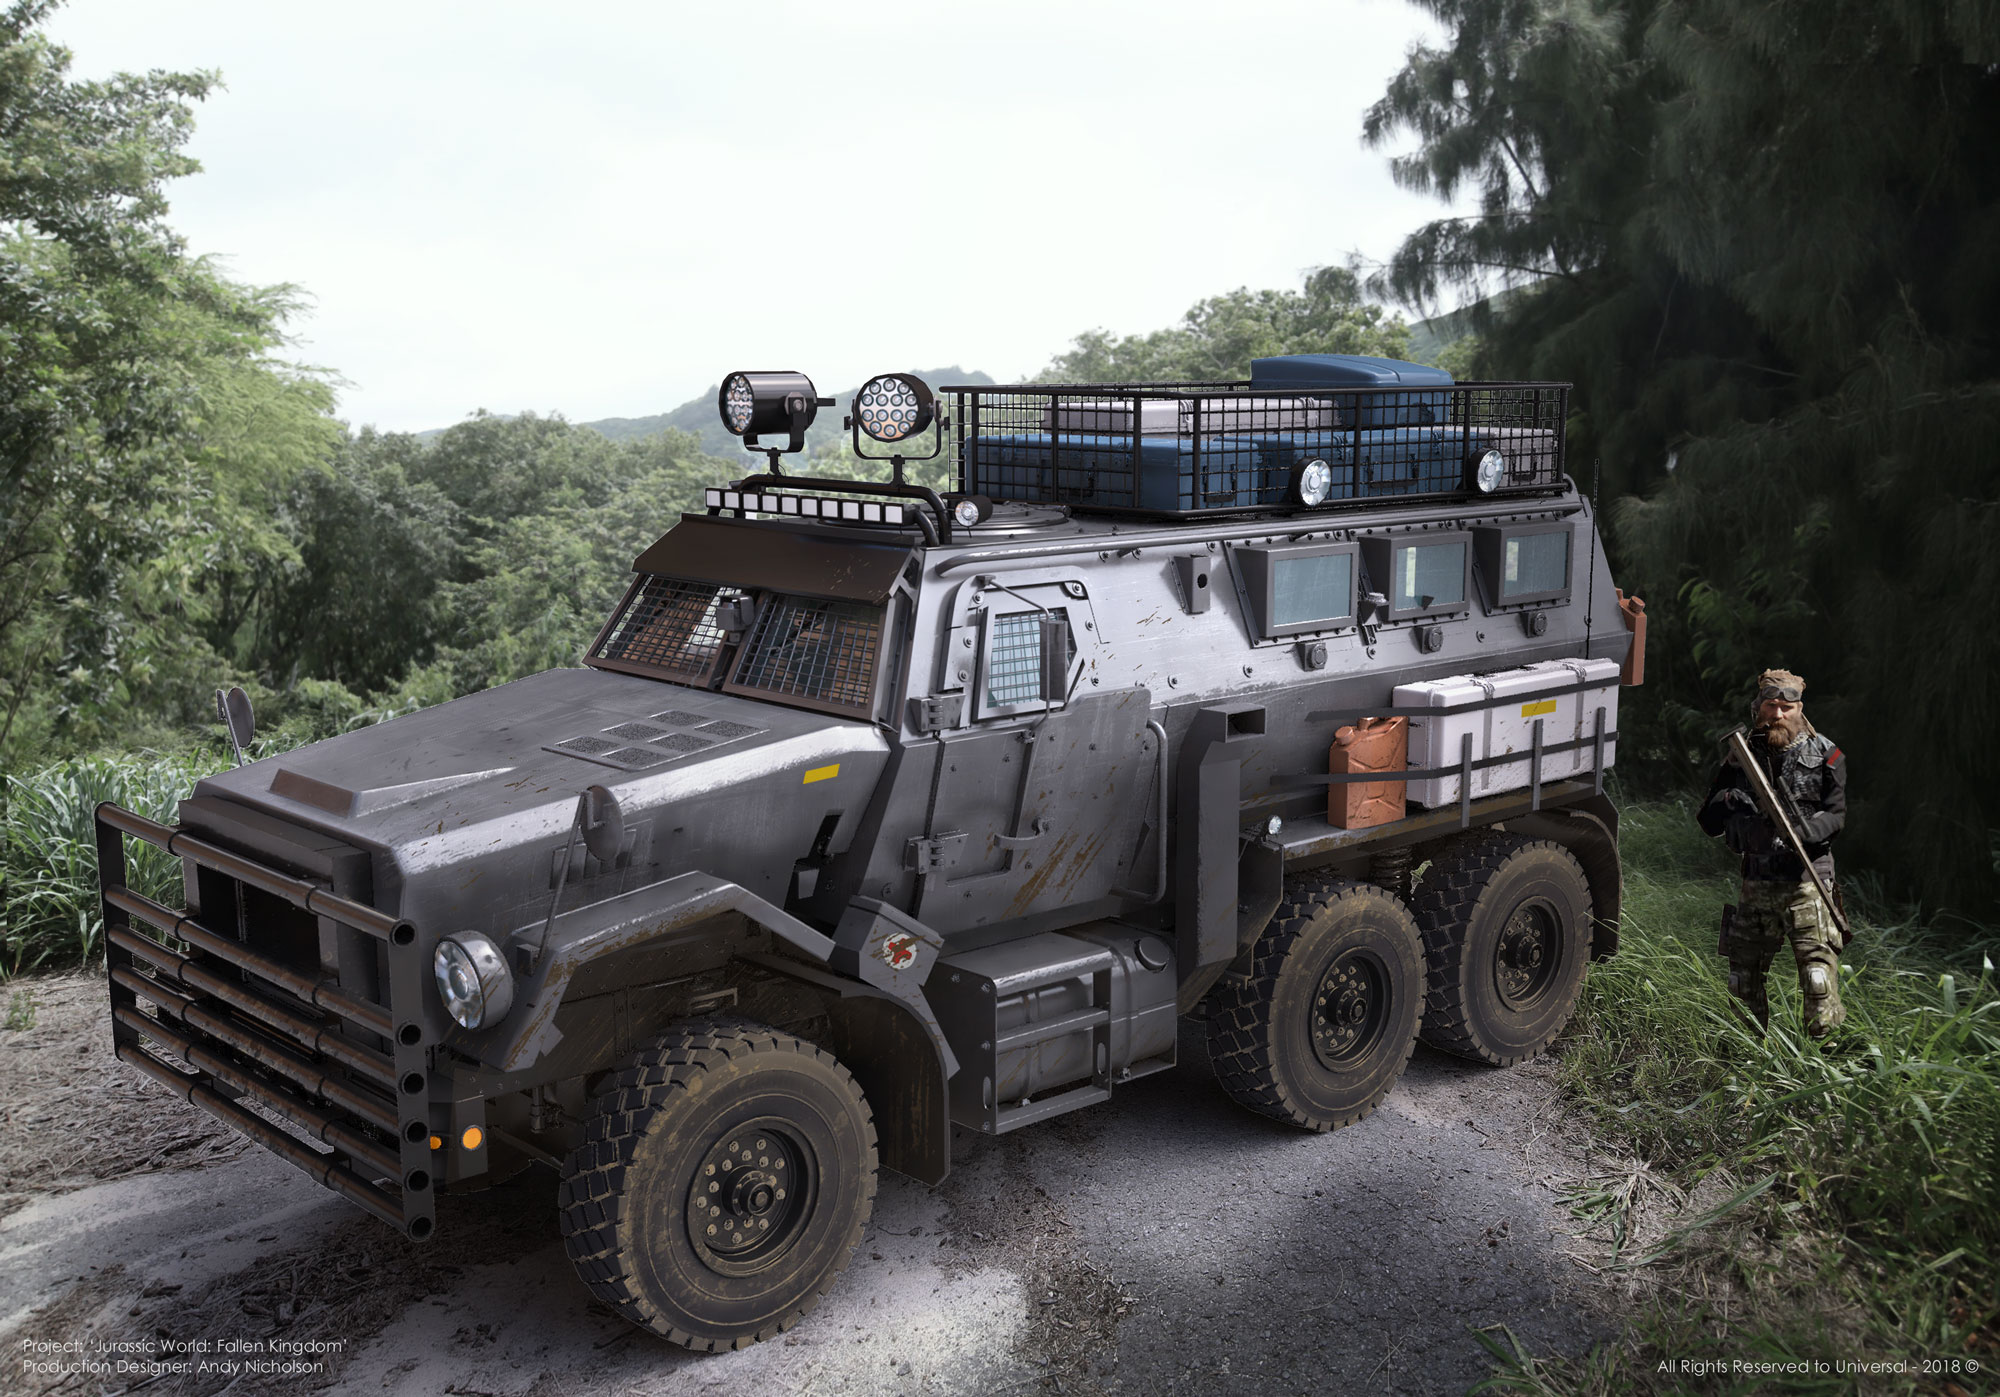 160915_ASSET_VEHICLE_MRAP_JUNGLE_AV_01